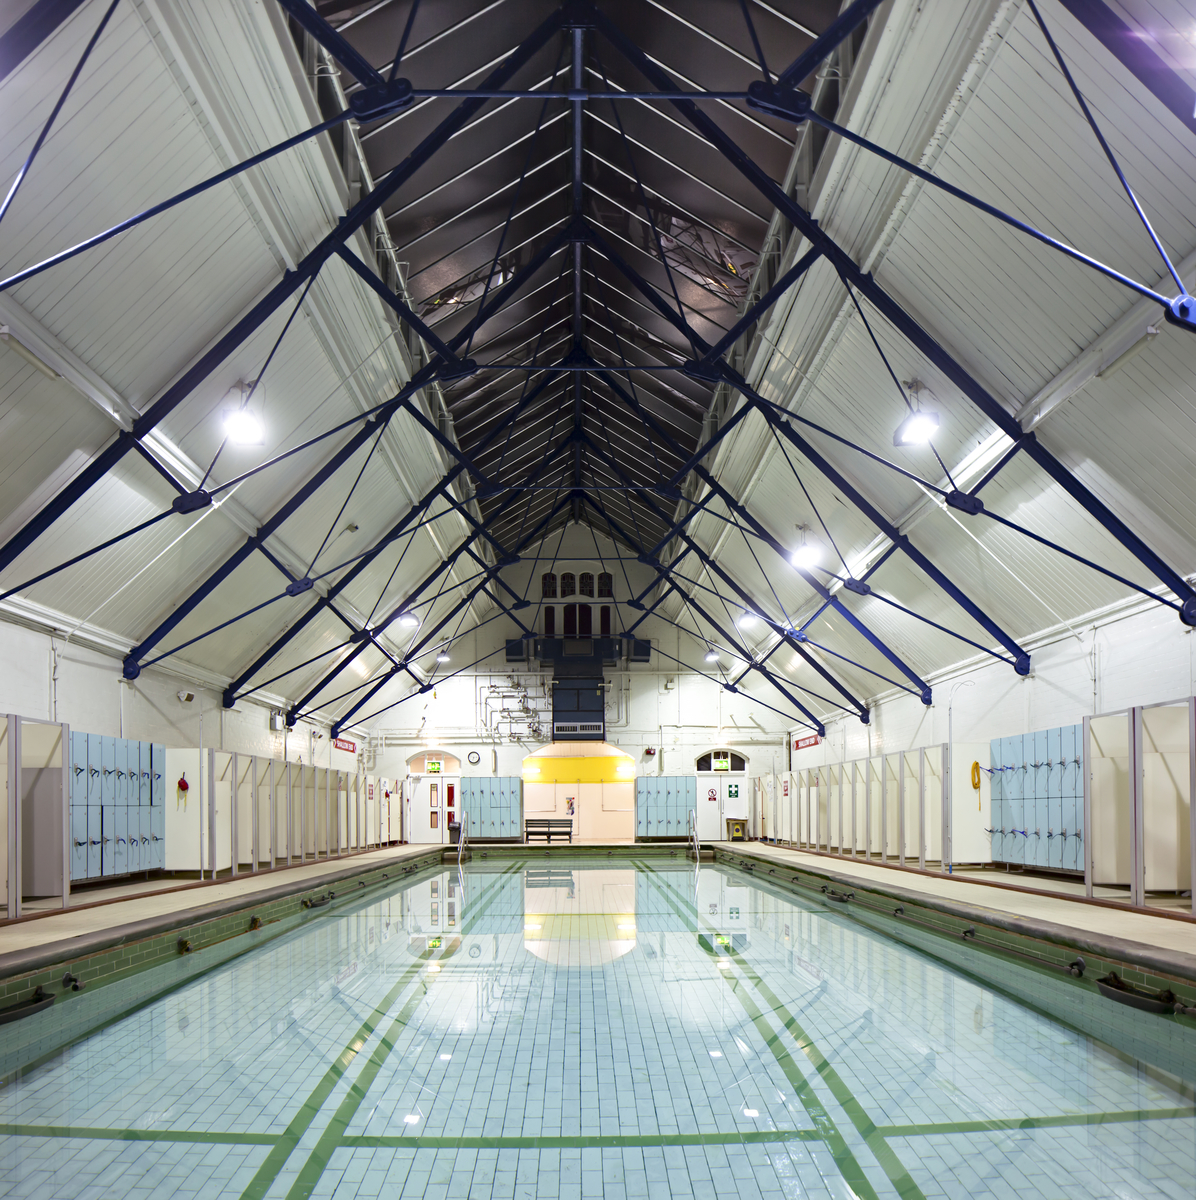 301 moved permanently - Swimming pool manchester city centre ...